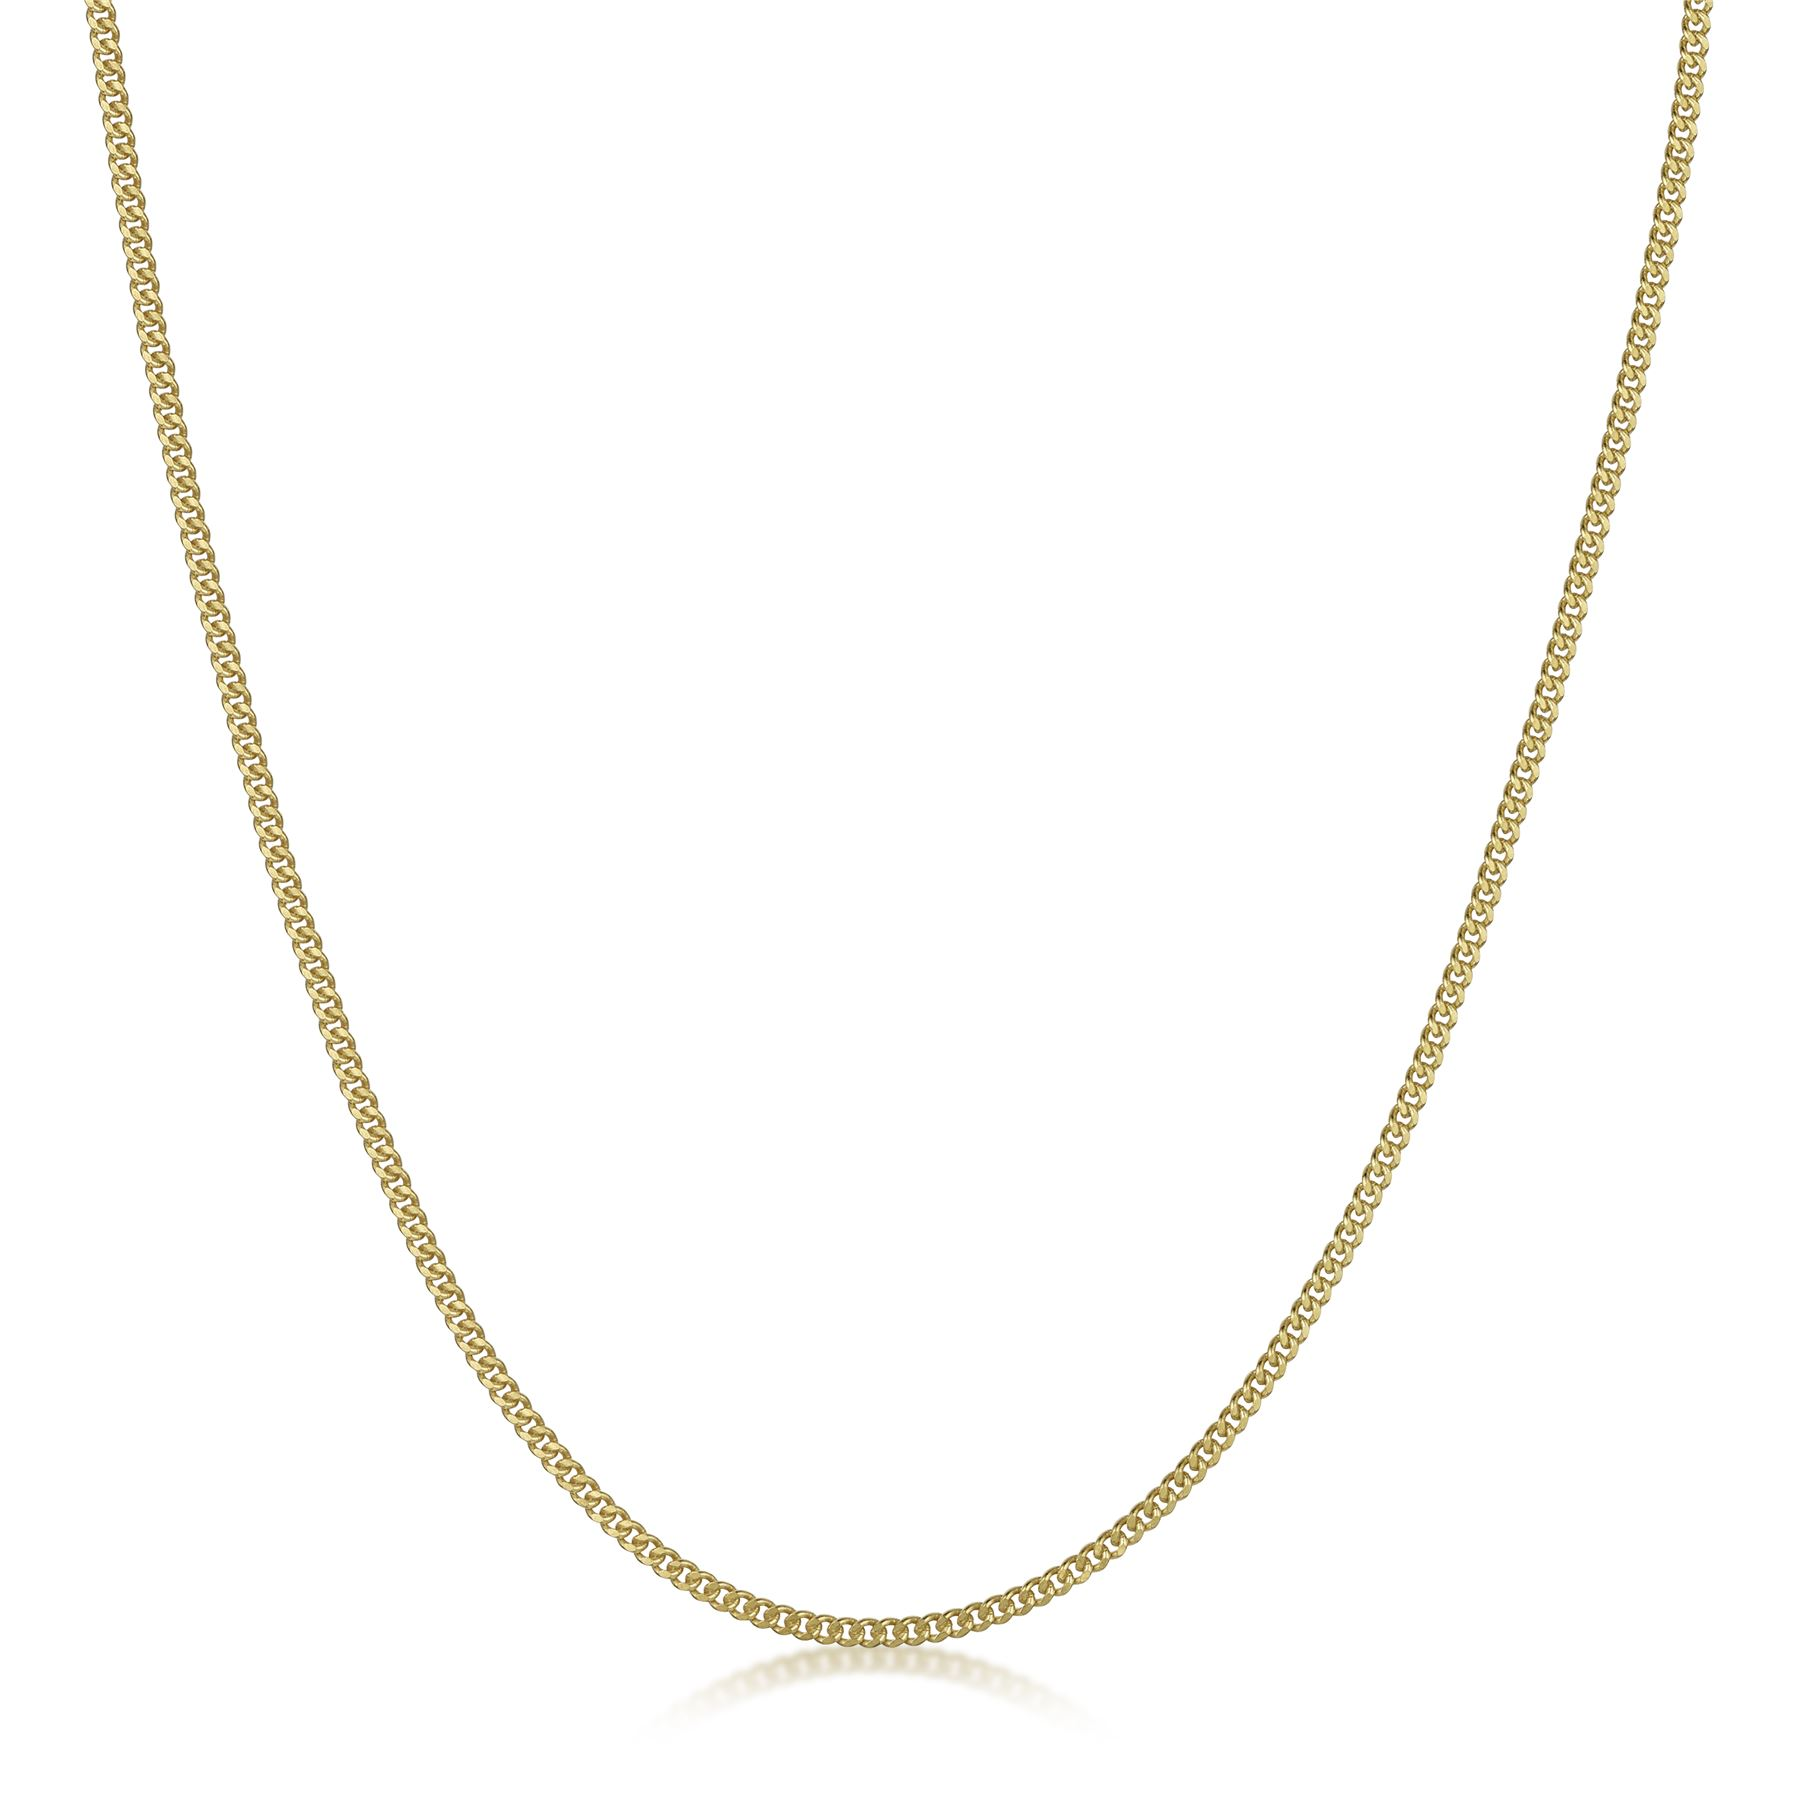 Amberta-Genuine-Gold-Plated-on-Real-925-Sterling-Silver-Necklace-Chain-Italy miniatura 11